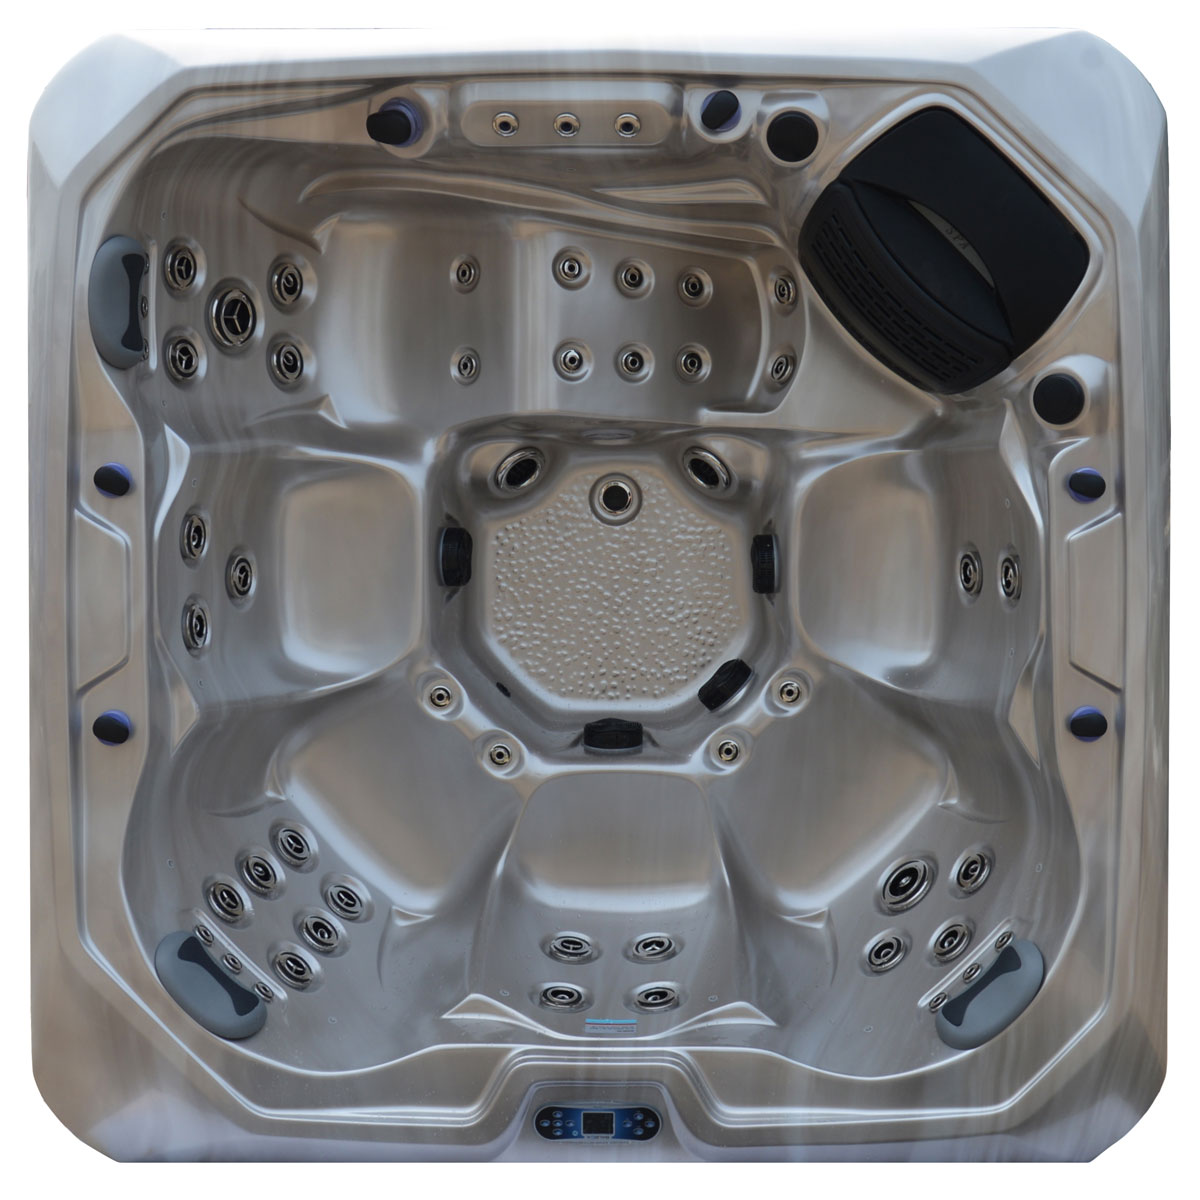 Serenity 8XL Top View